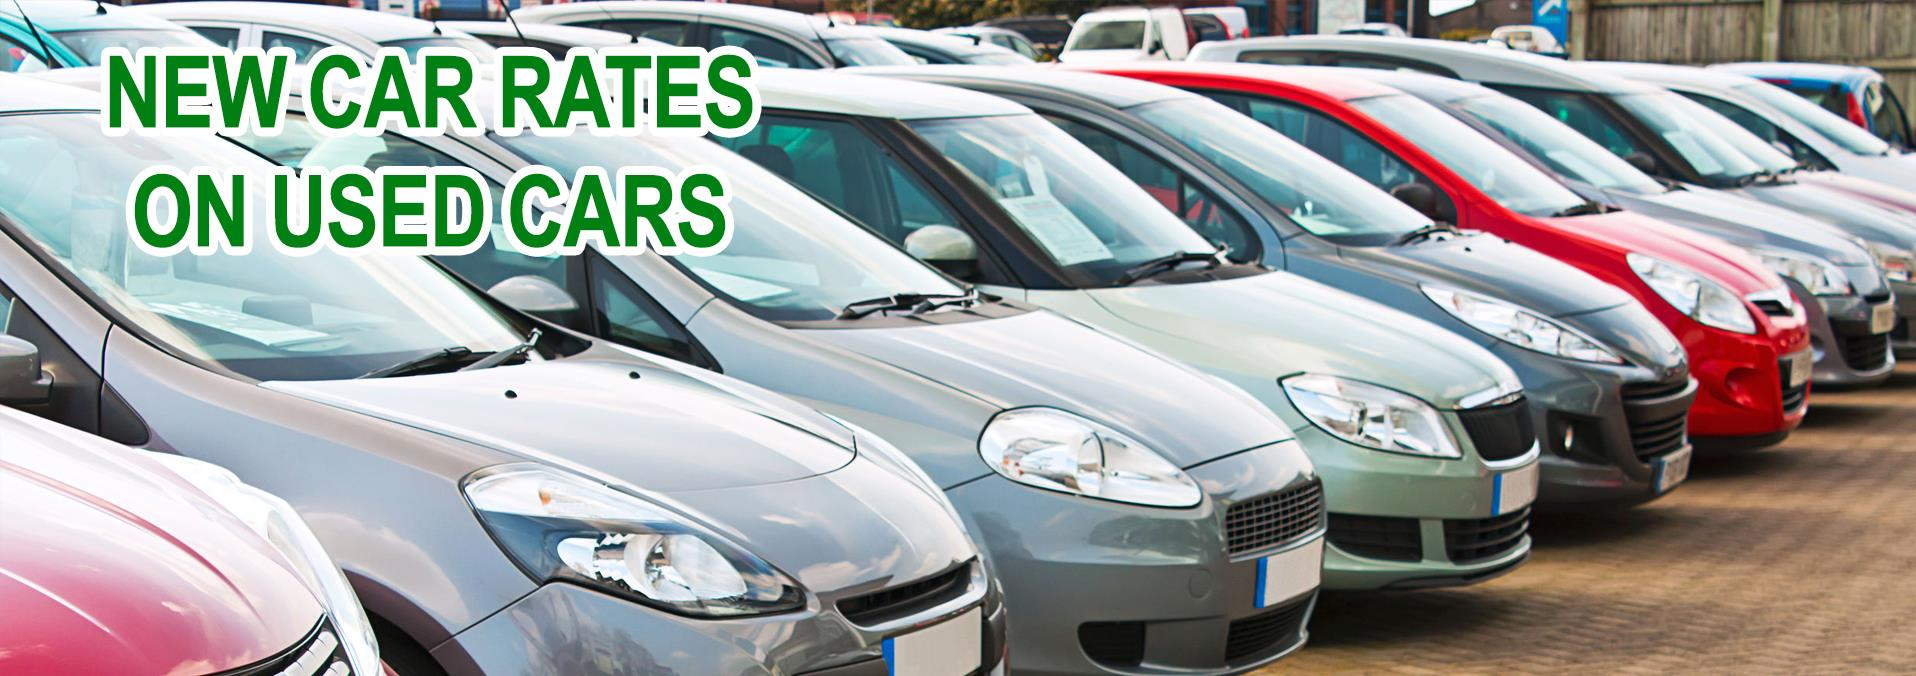 used cars greenville nc used cars trucks nc greenville auto world used cars greenville nc used cars